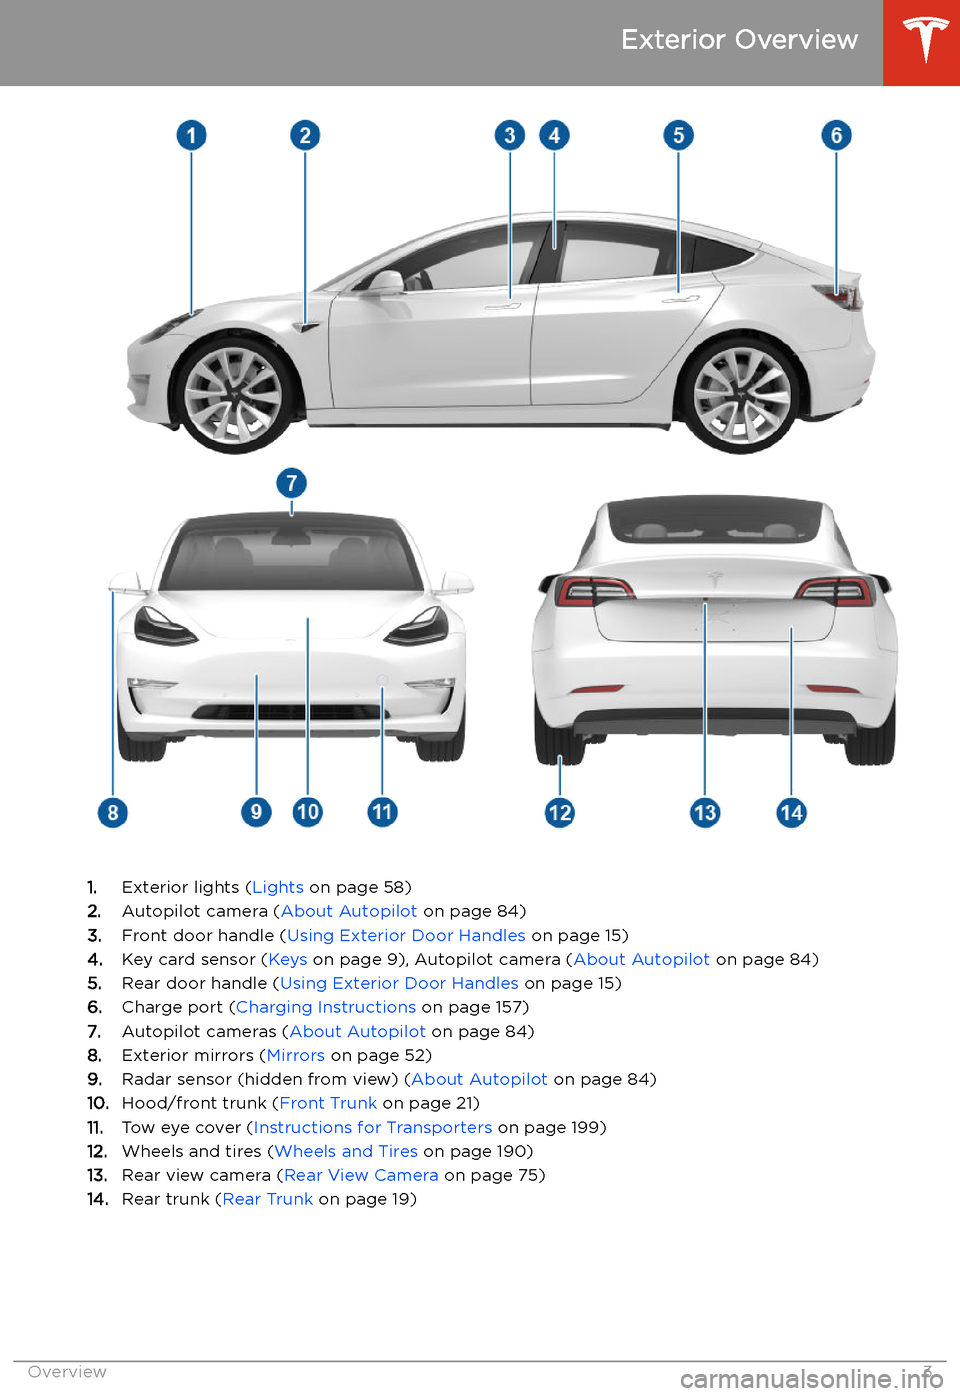 TESLA MODEL 3 2020  Owners Manuals Exterior Overview 1.Exterior lights ( Lights on page 58) 2. Autopilot camera ( About Autopilot on page 84) 3. Front door handle ( Using Exterior Door Handles  on page 15) 4. Key card sensor ( Keys on